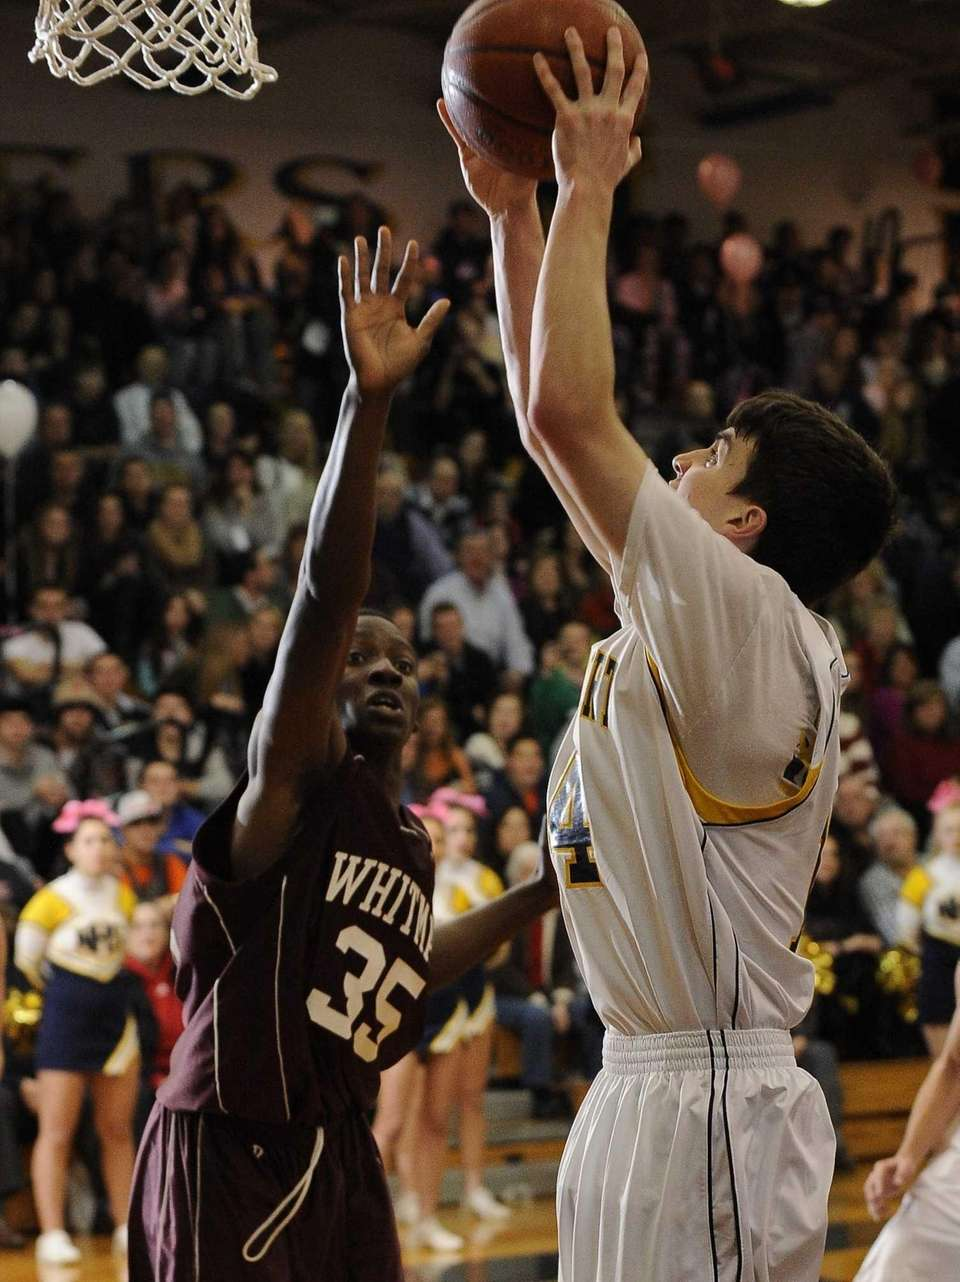 Northport's Thomas Kennedy shoots ahead of Whitman's K.B.